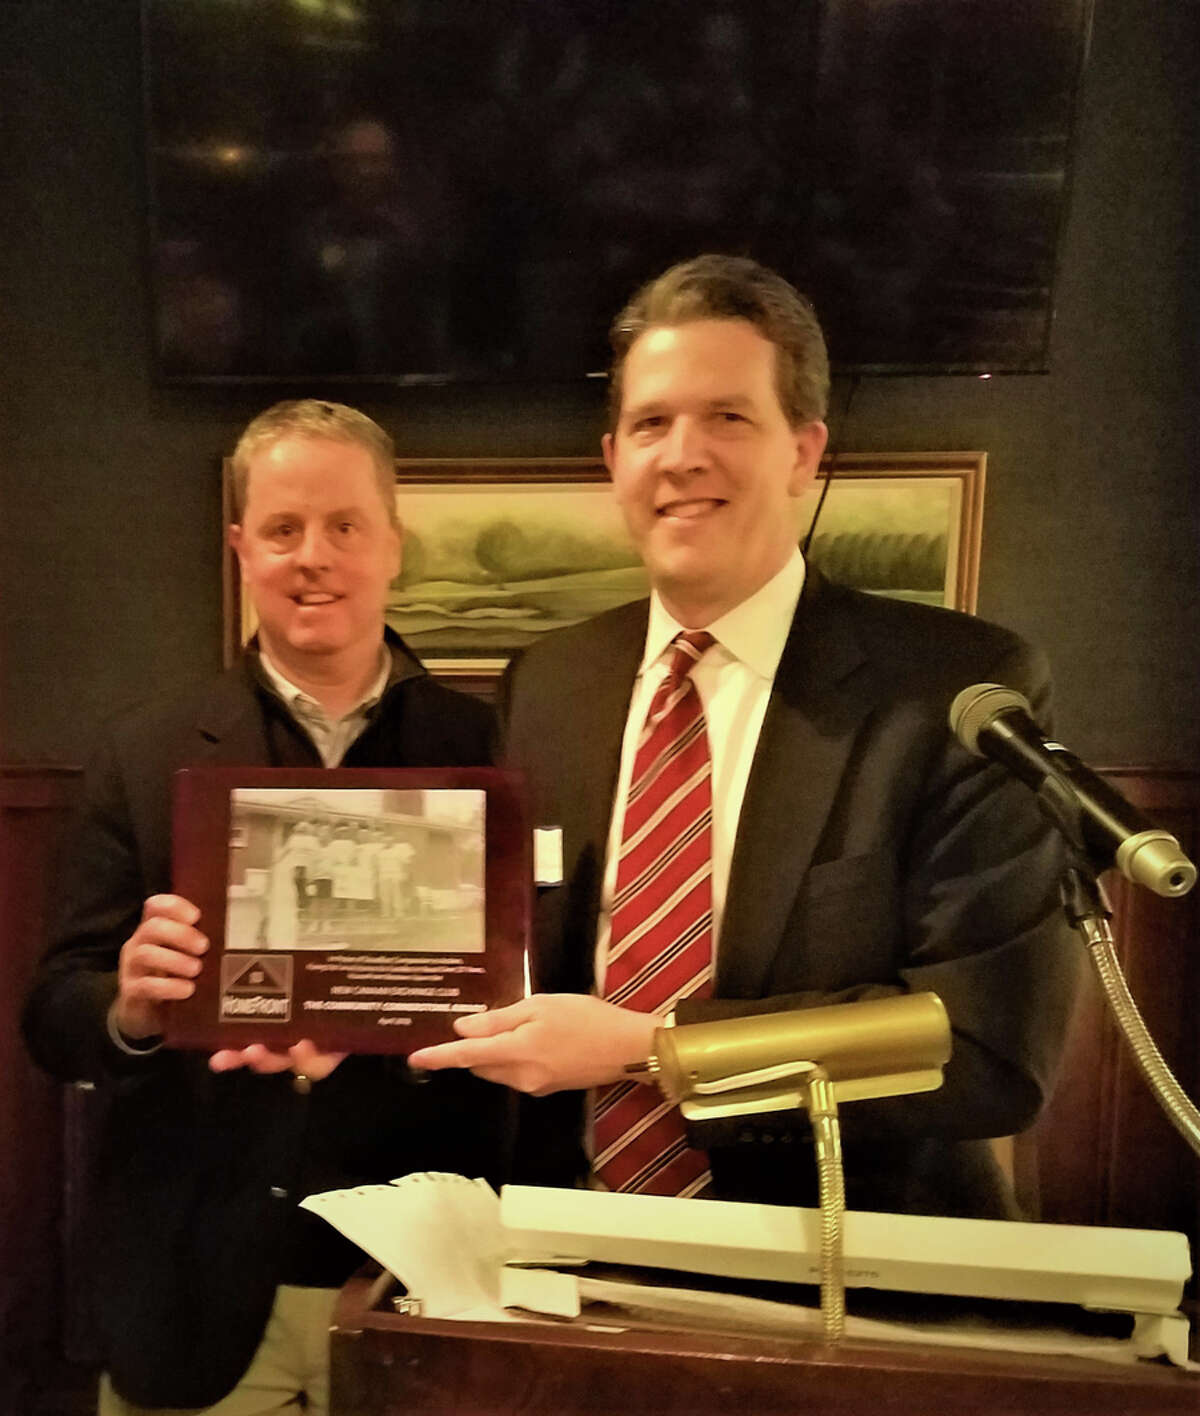 The Exchange Club of New Canaan has marked its 25th year by fixing homes. New Canaan Exchange Club President Jeff Platt and HomeFront Executive Director Sean O'Brien attend a club meeting where Platt presented the Community Cornerstone Award.